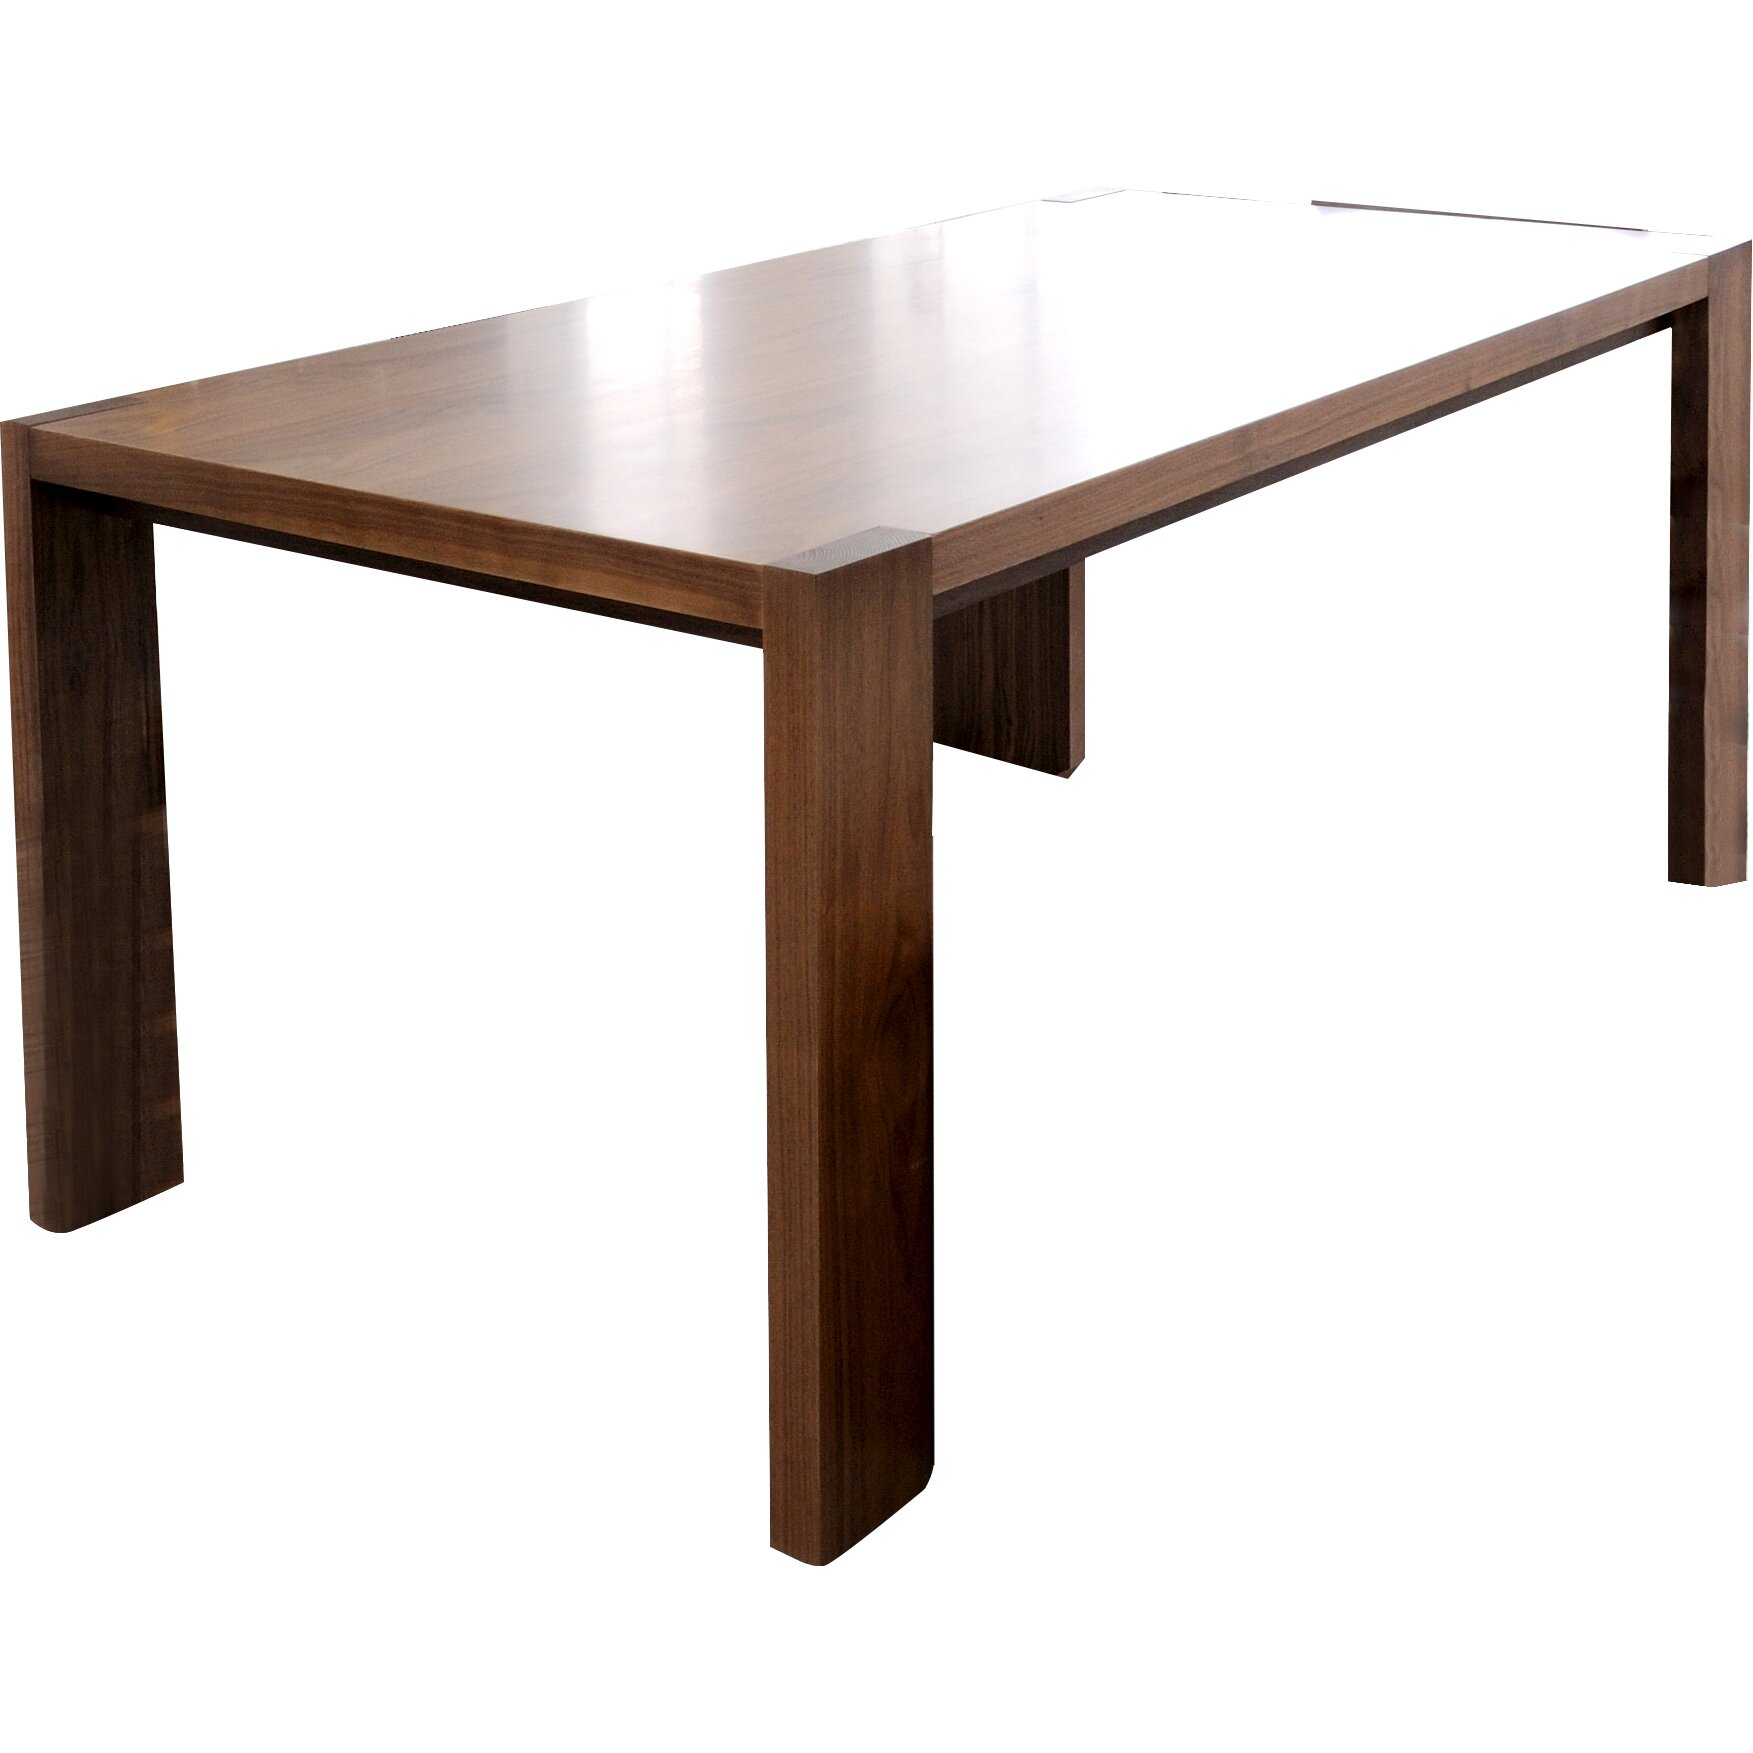 Plank Dining Table ~ Gus modern plank dining table reviews wayfair